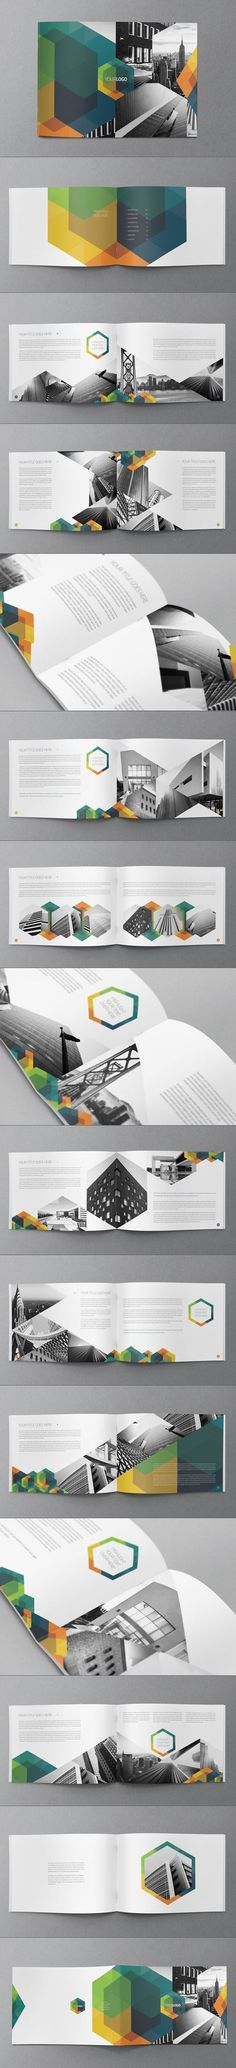 Graphic Design Inspiration - Business Portfolio - Company Profile - Brochure - Press Release - Modern - Geometric - Colorful: